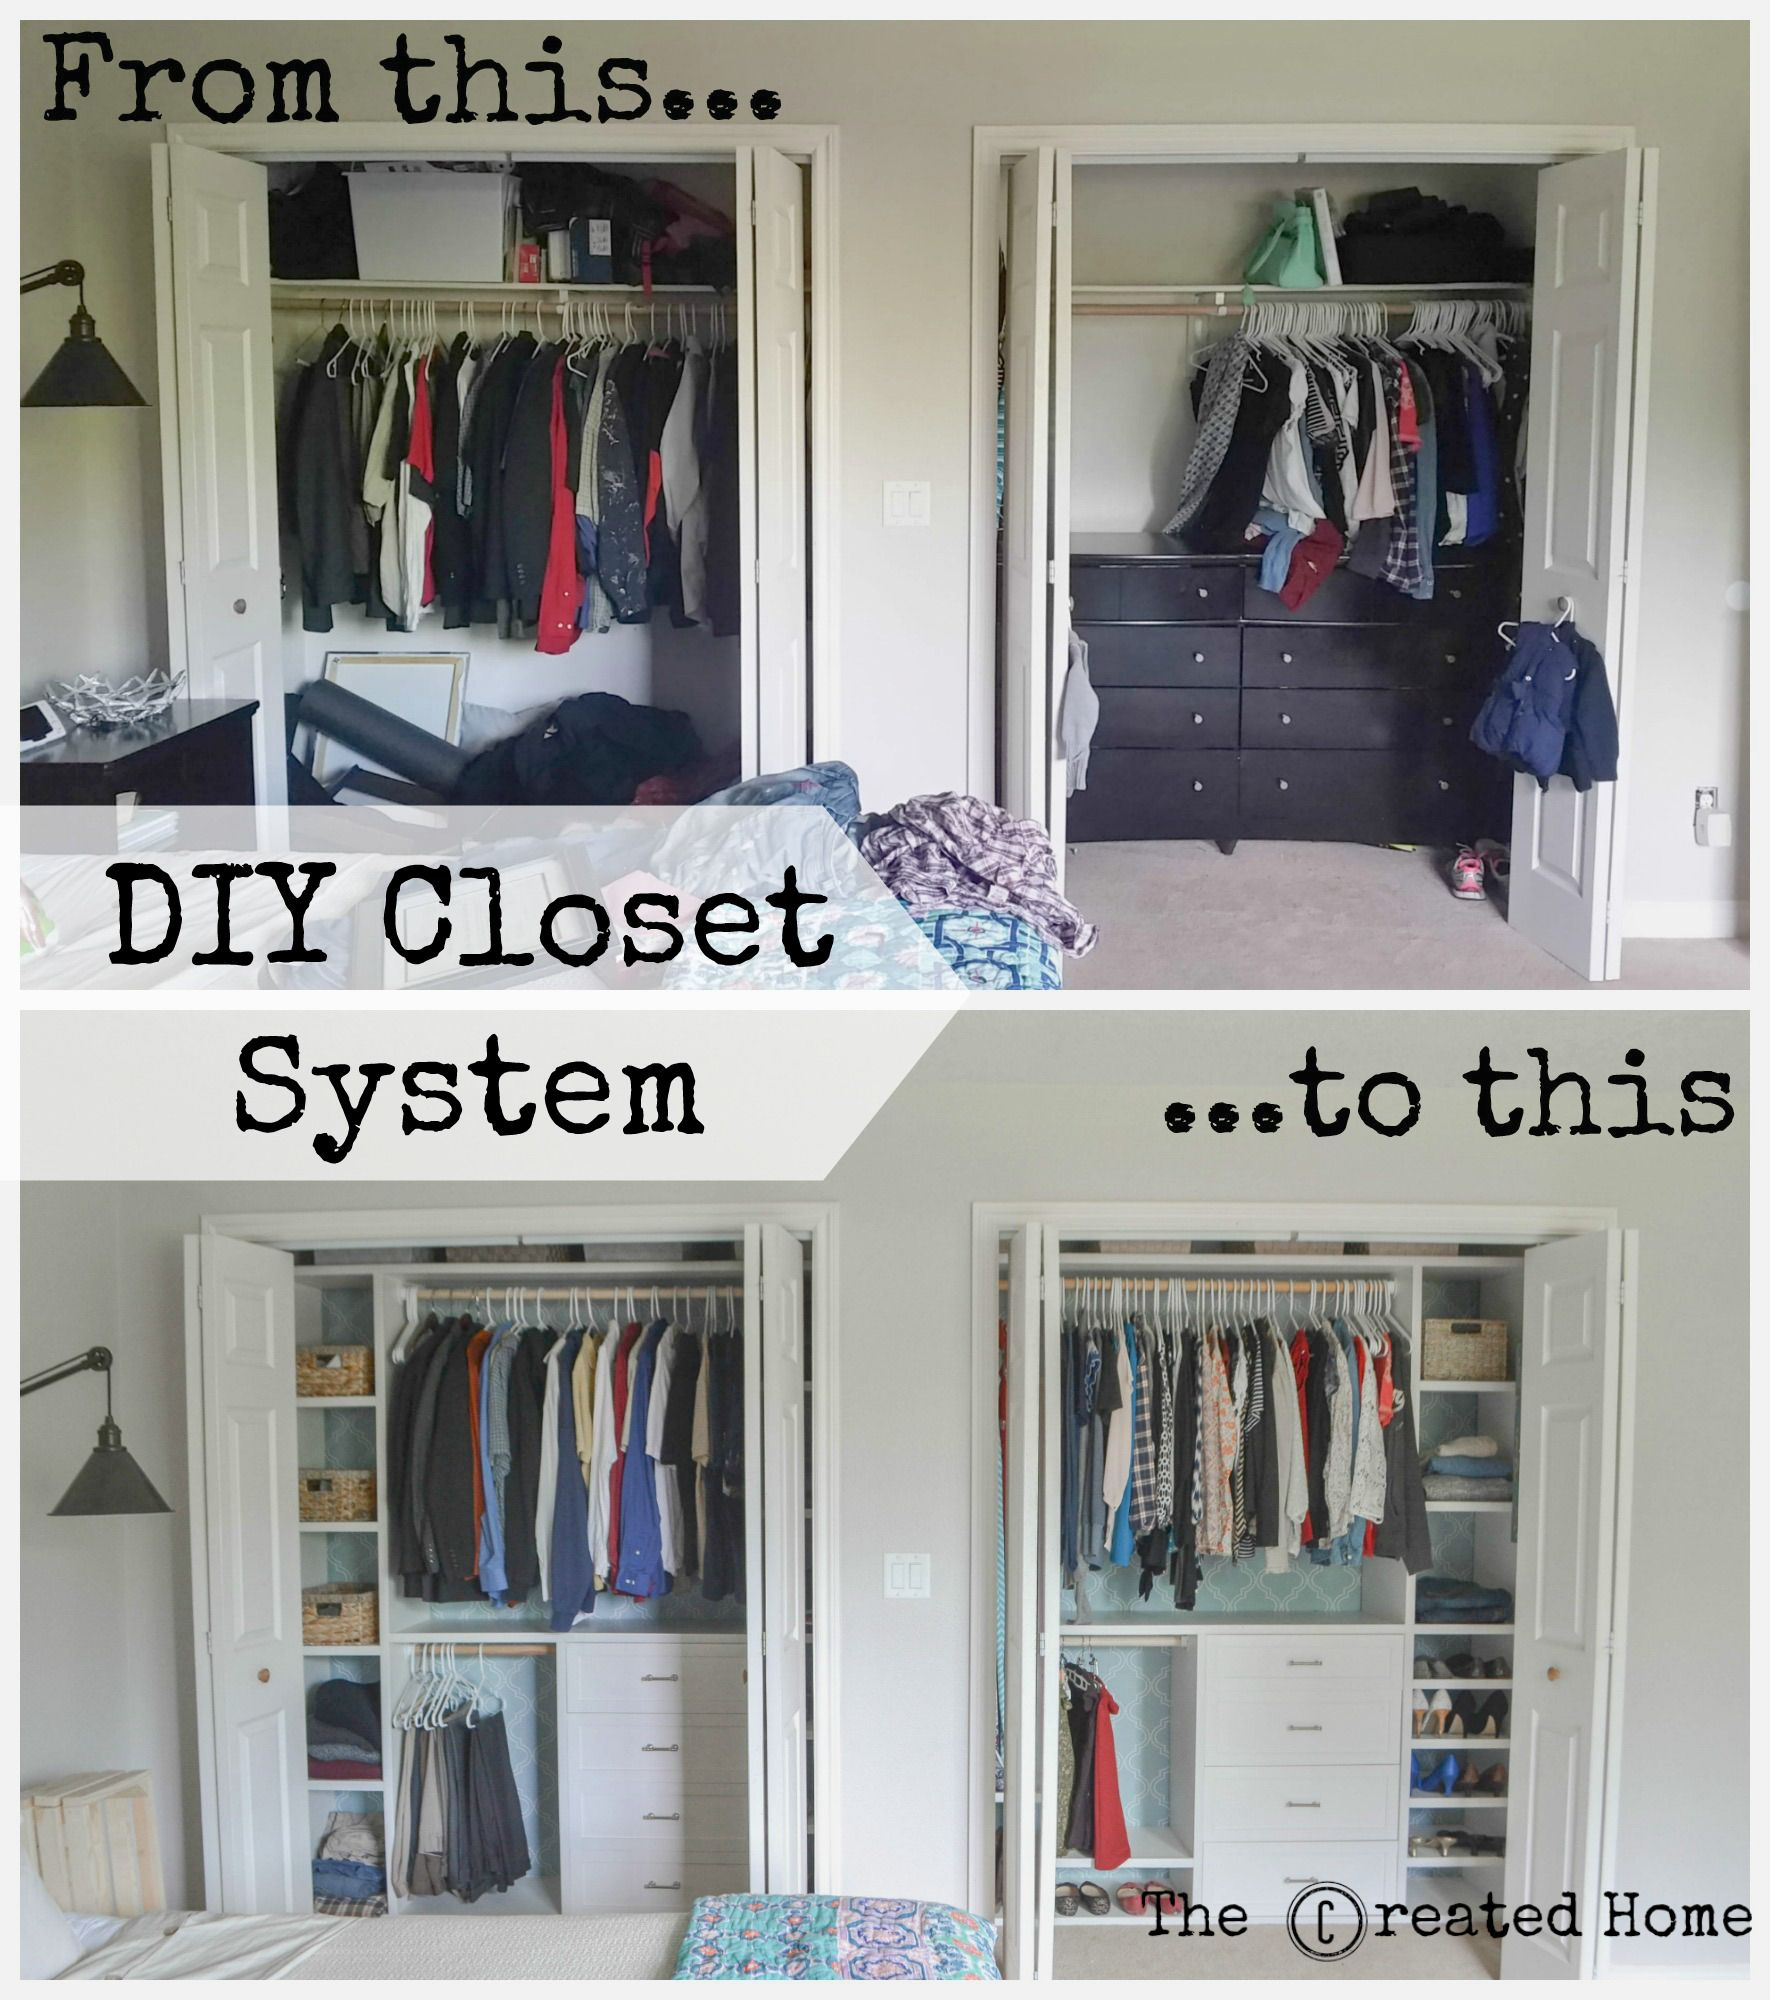 How to build a quality diy closet system for any size closet